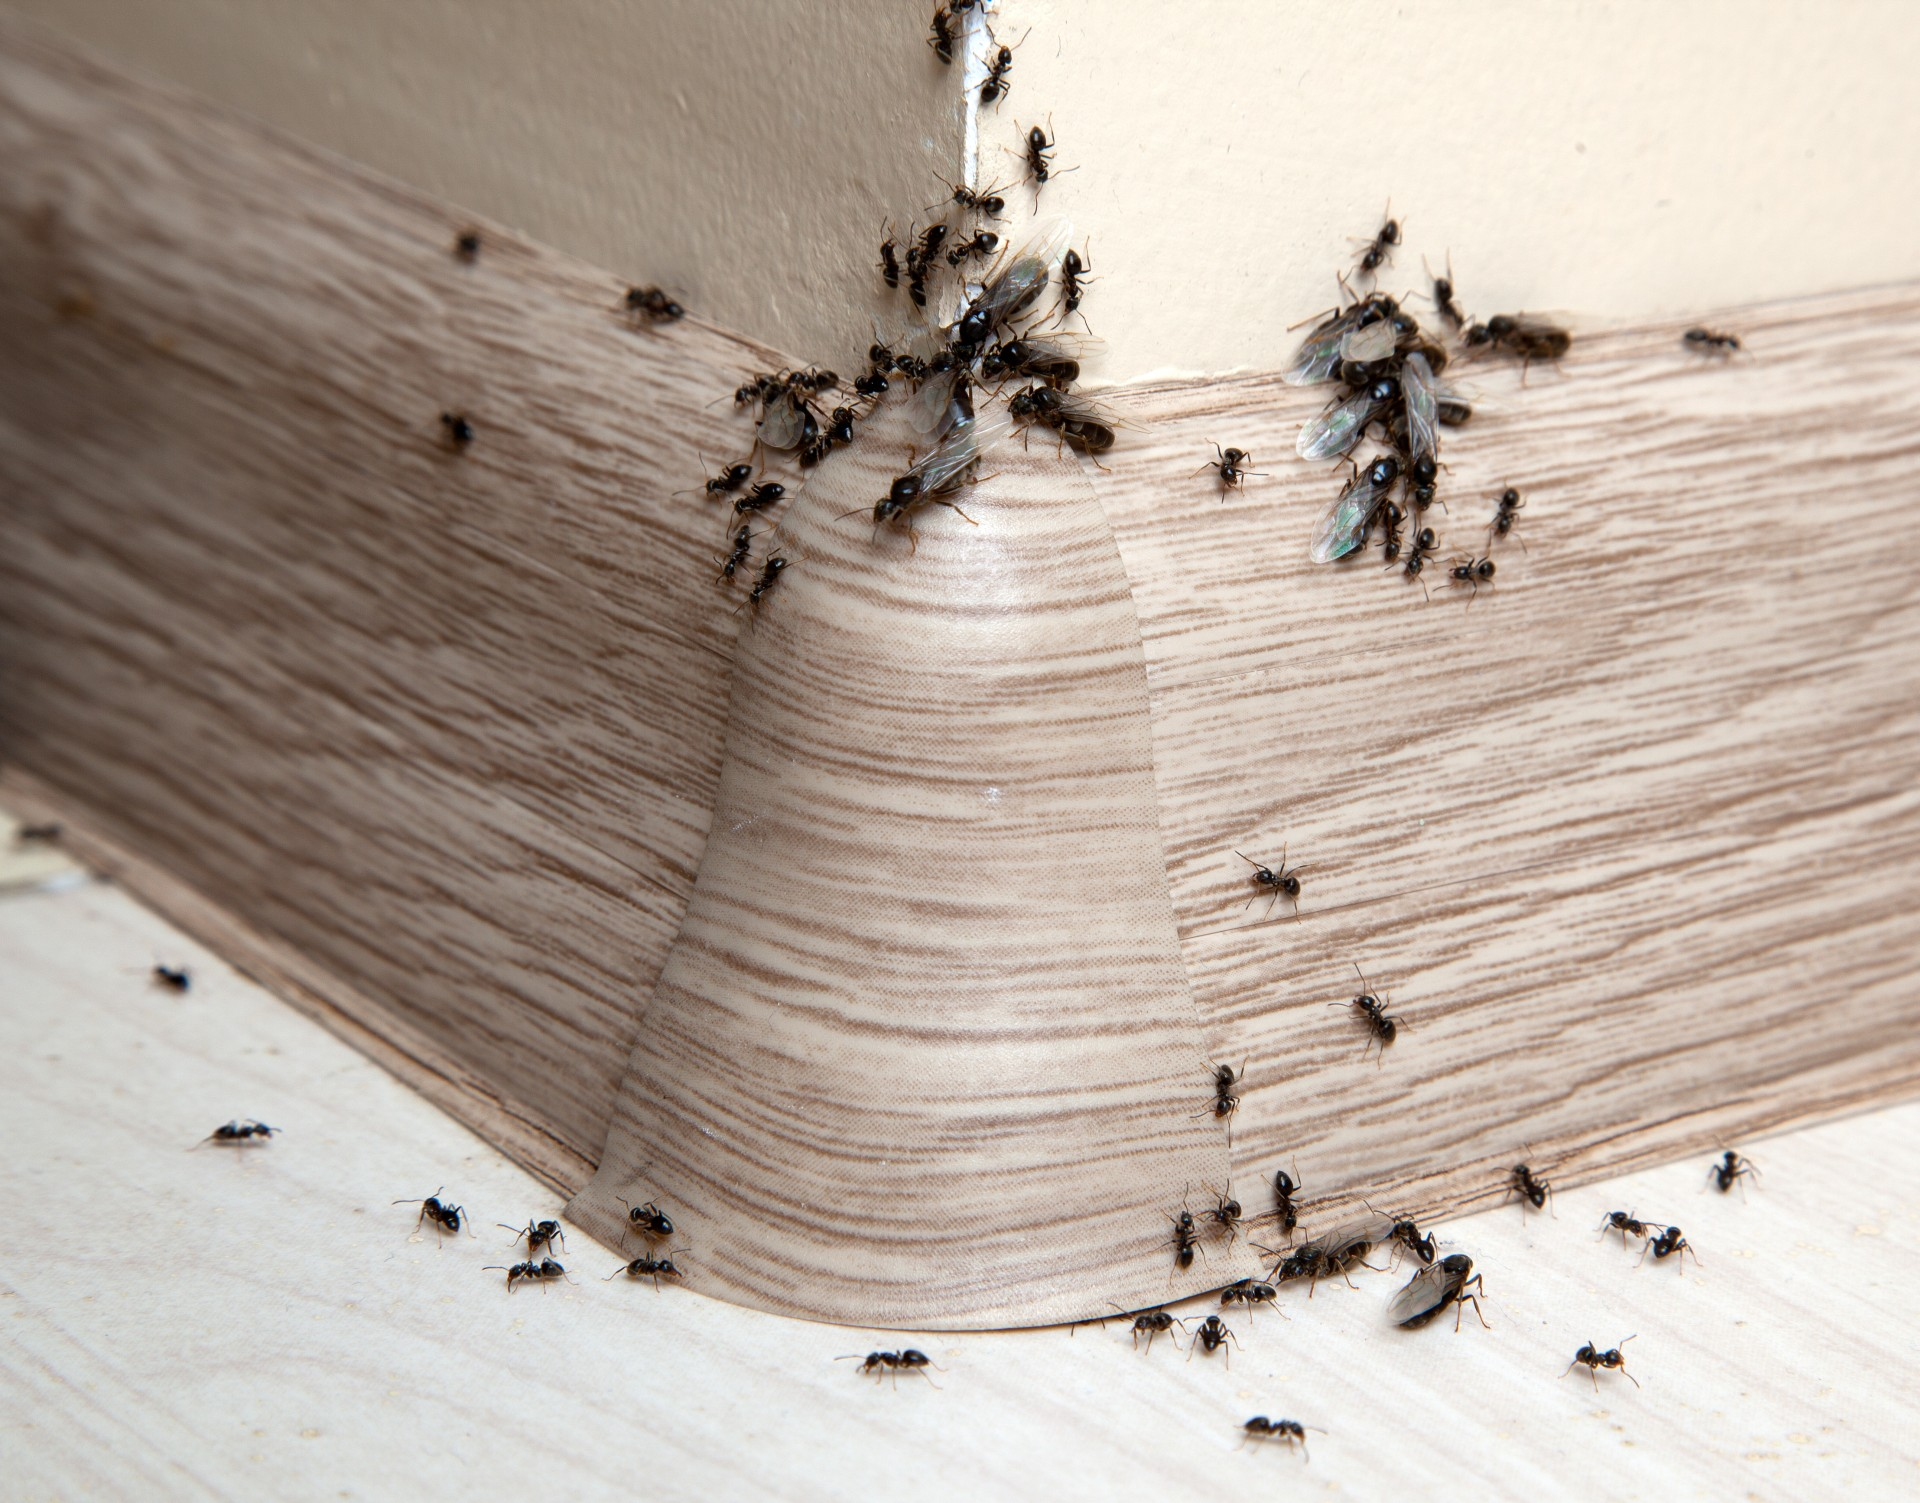 Ant Infestation, Pest Control in South Woodford, E18. Call Now 020 8166 9746